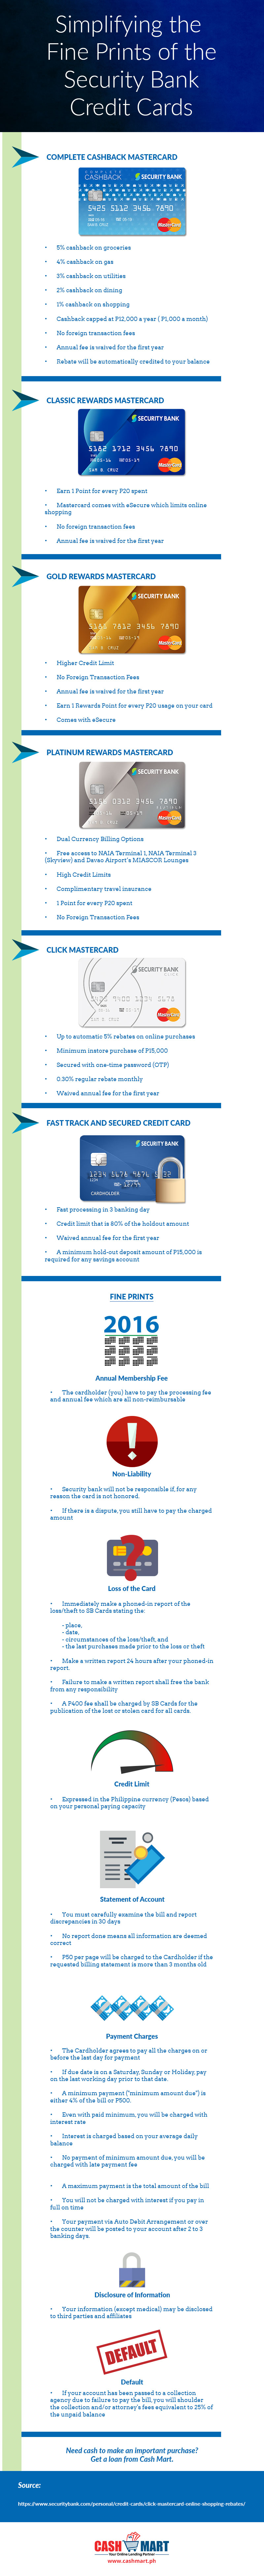 simplifying-the-fine-prints-of-the-security-bank-credit-cards